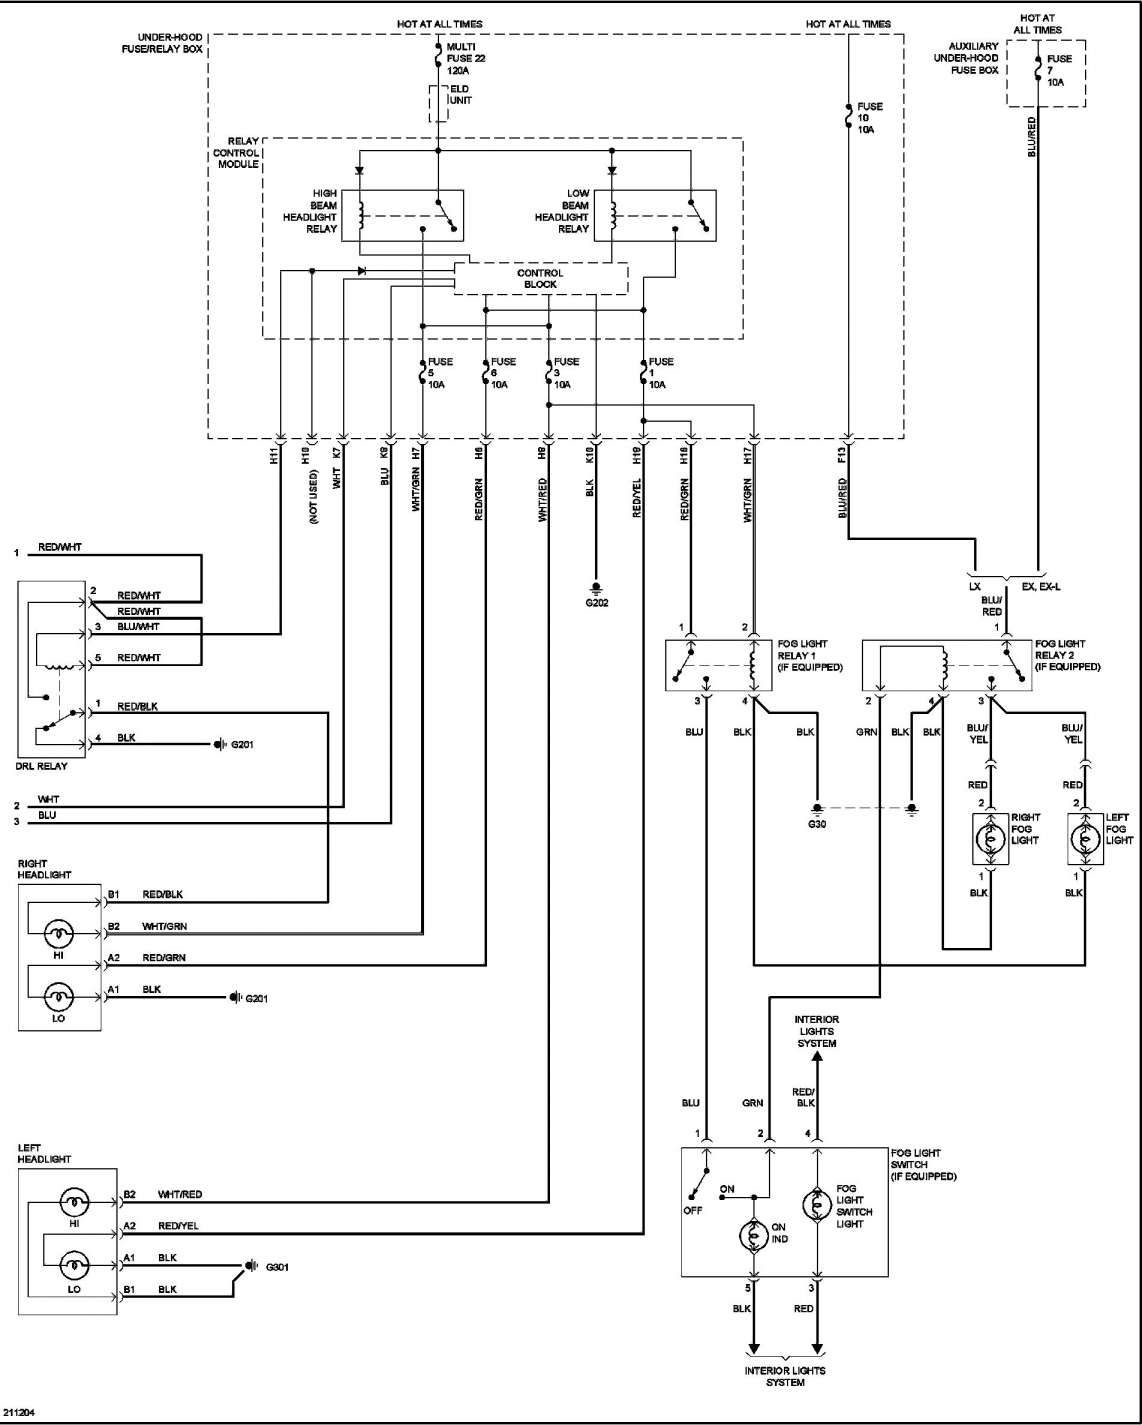 10 99 Civic Engine Wiring Diagram Honda Civic Engine Honda Civic Honda Odyssey